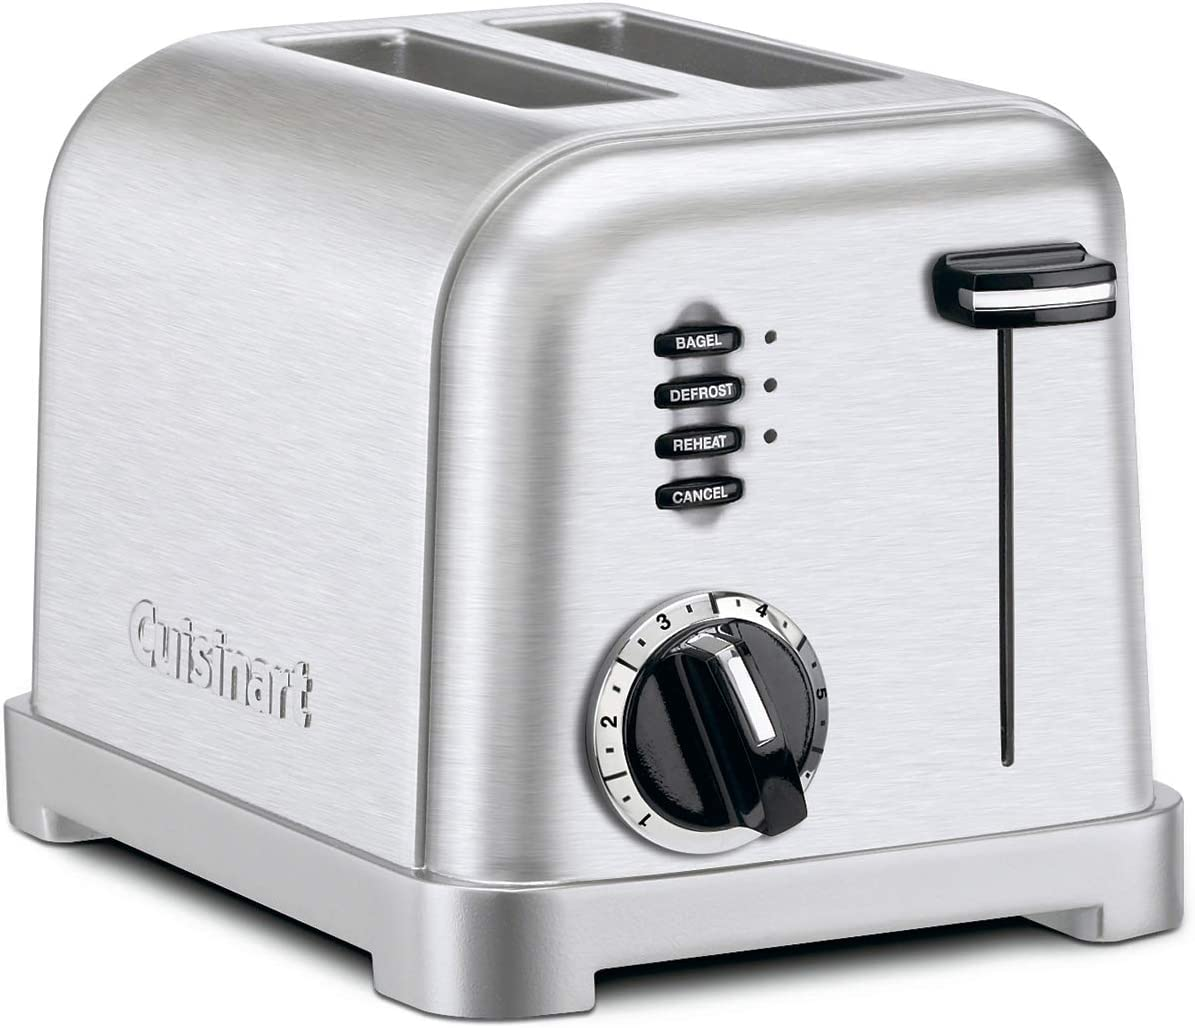 Cuisinart CPT-160P1 Metal Classic 2-Slice toaster, Brushed Stainless